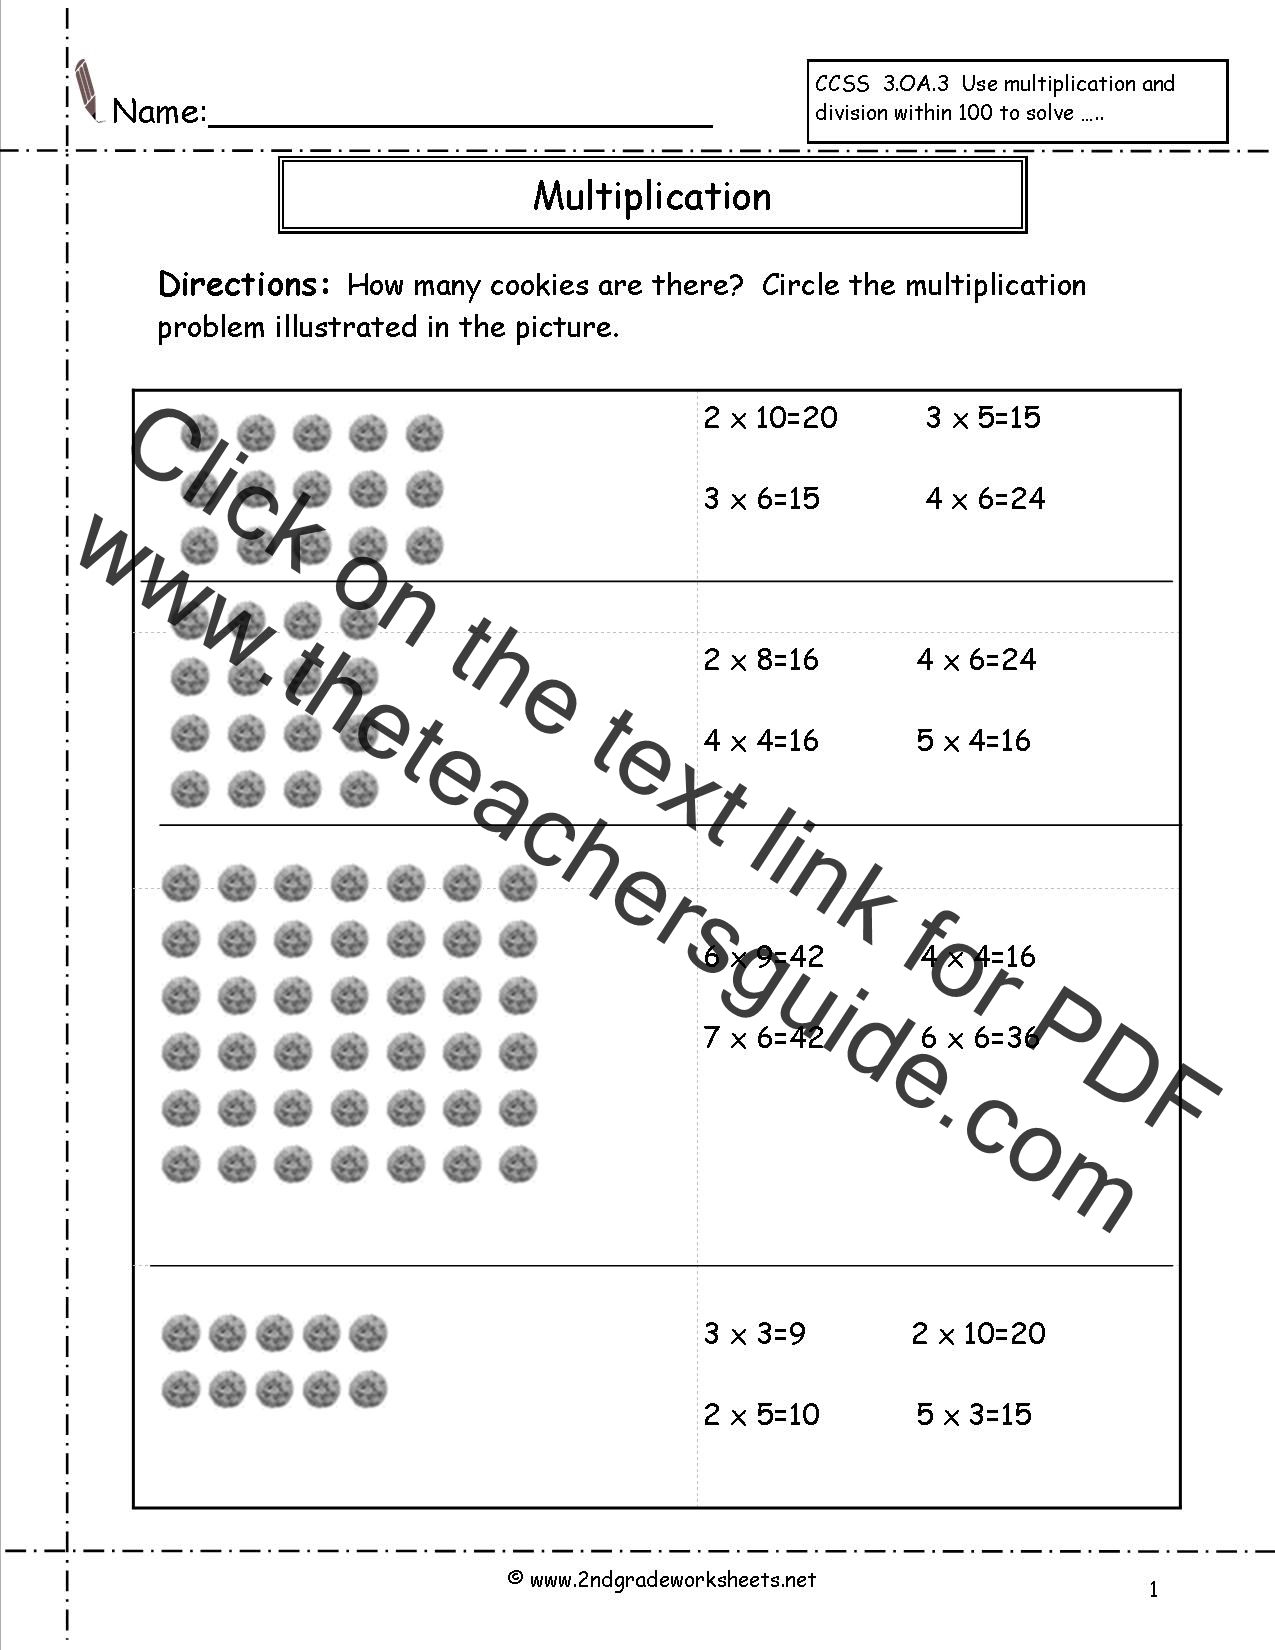 Multiplication Arrays Worksheets – Multiply by 4 Worksheets